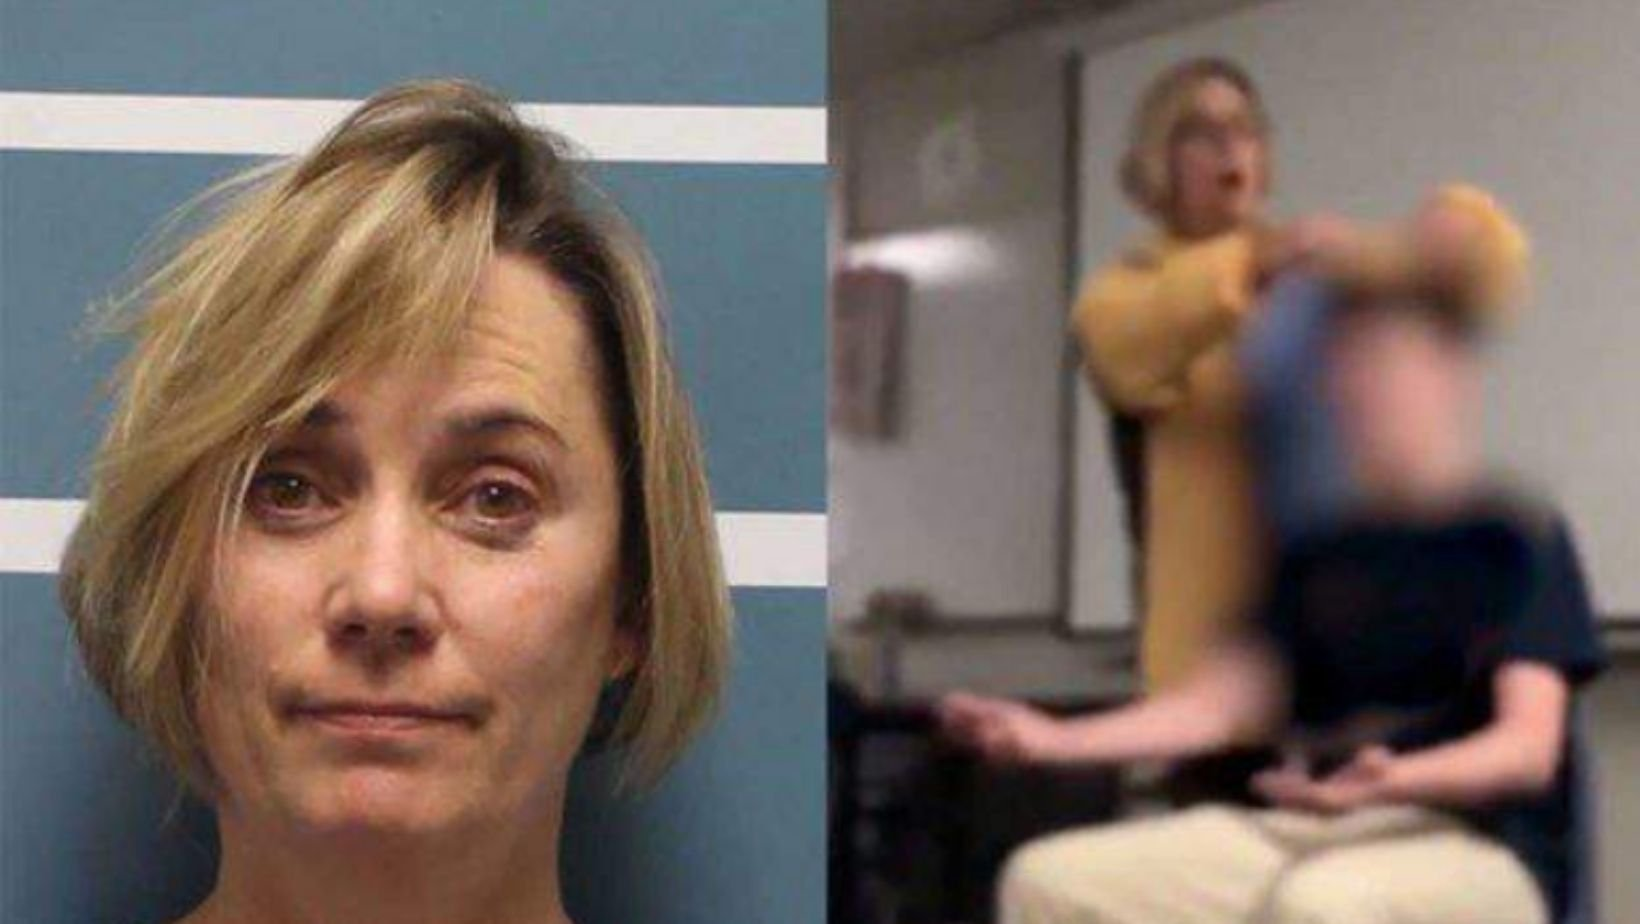 1 3.jpg?resize=1200,630 - Teacher Is Arrested After Cutting Her Student's Hair Without Permission